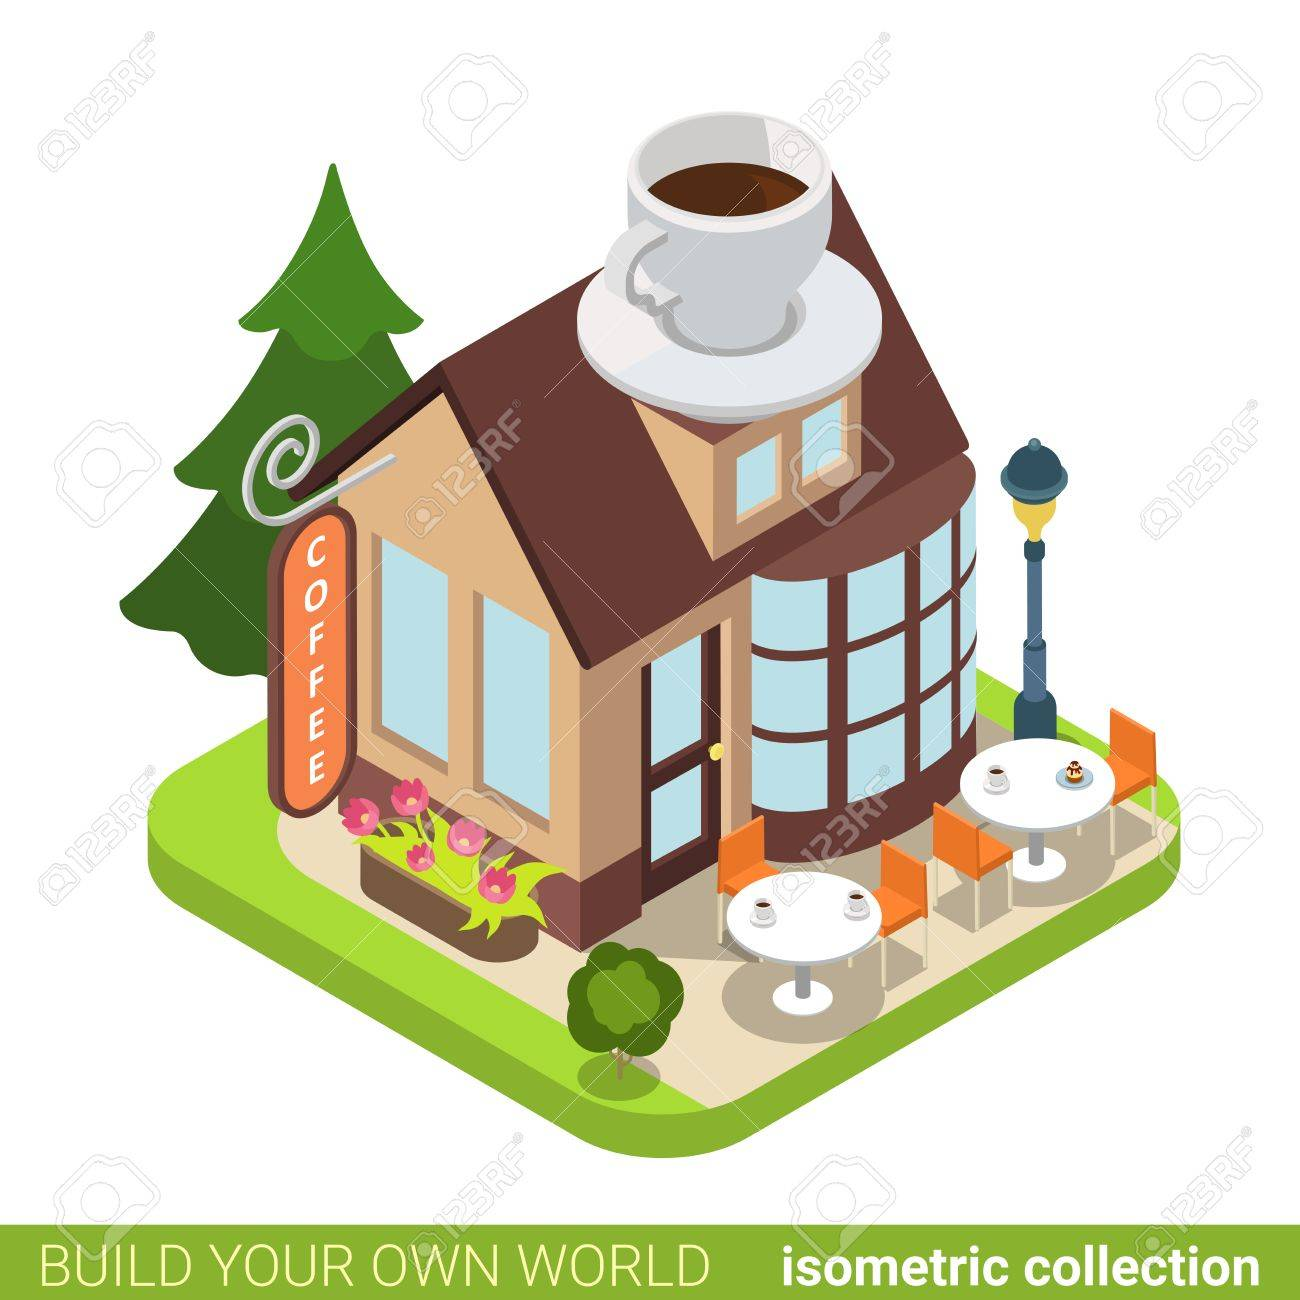 Building cartoon clipart restaurant building and restaurant building - Coffee Cafe Restaurant Building Realty Real Estate Concept Flat 3d Isometry Isometric Style Web Site